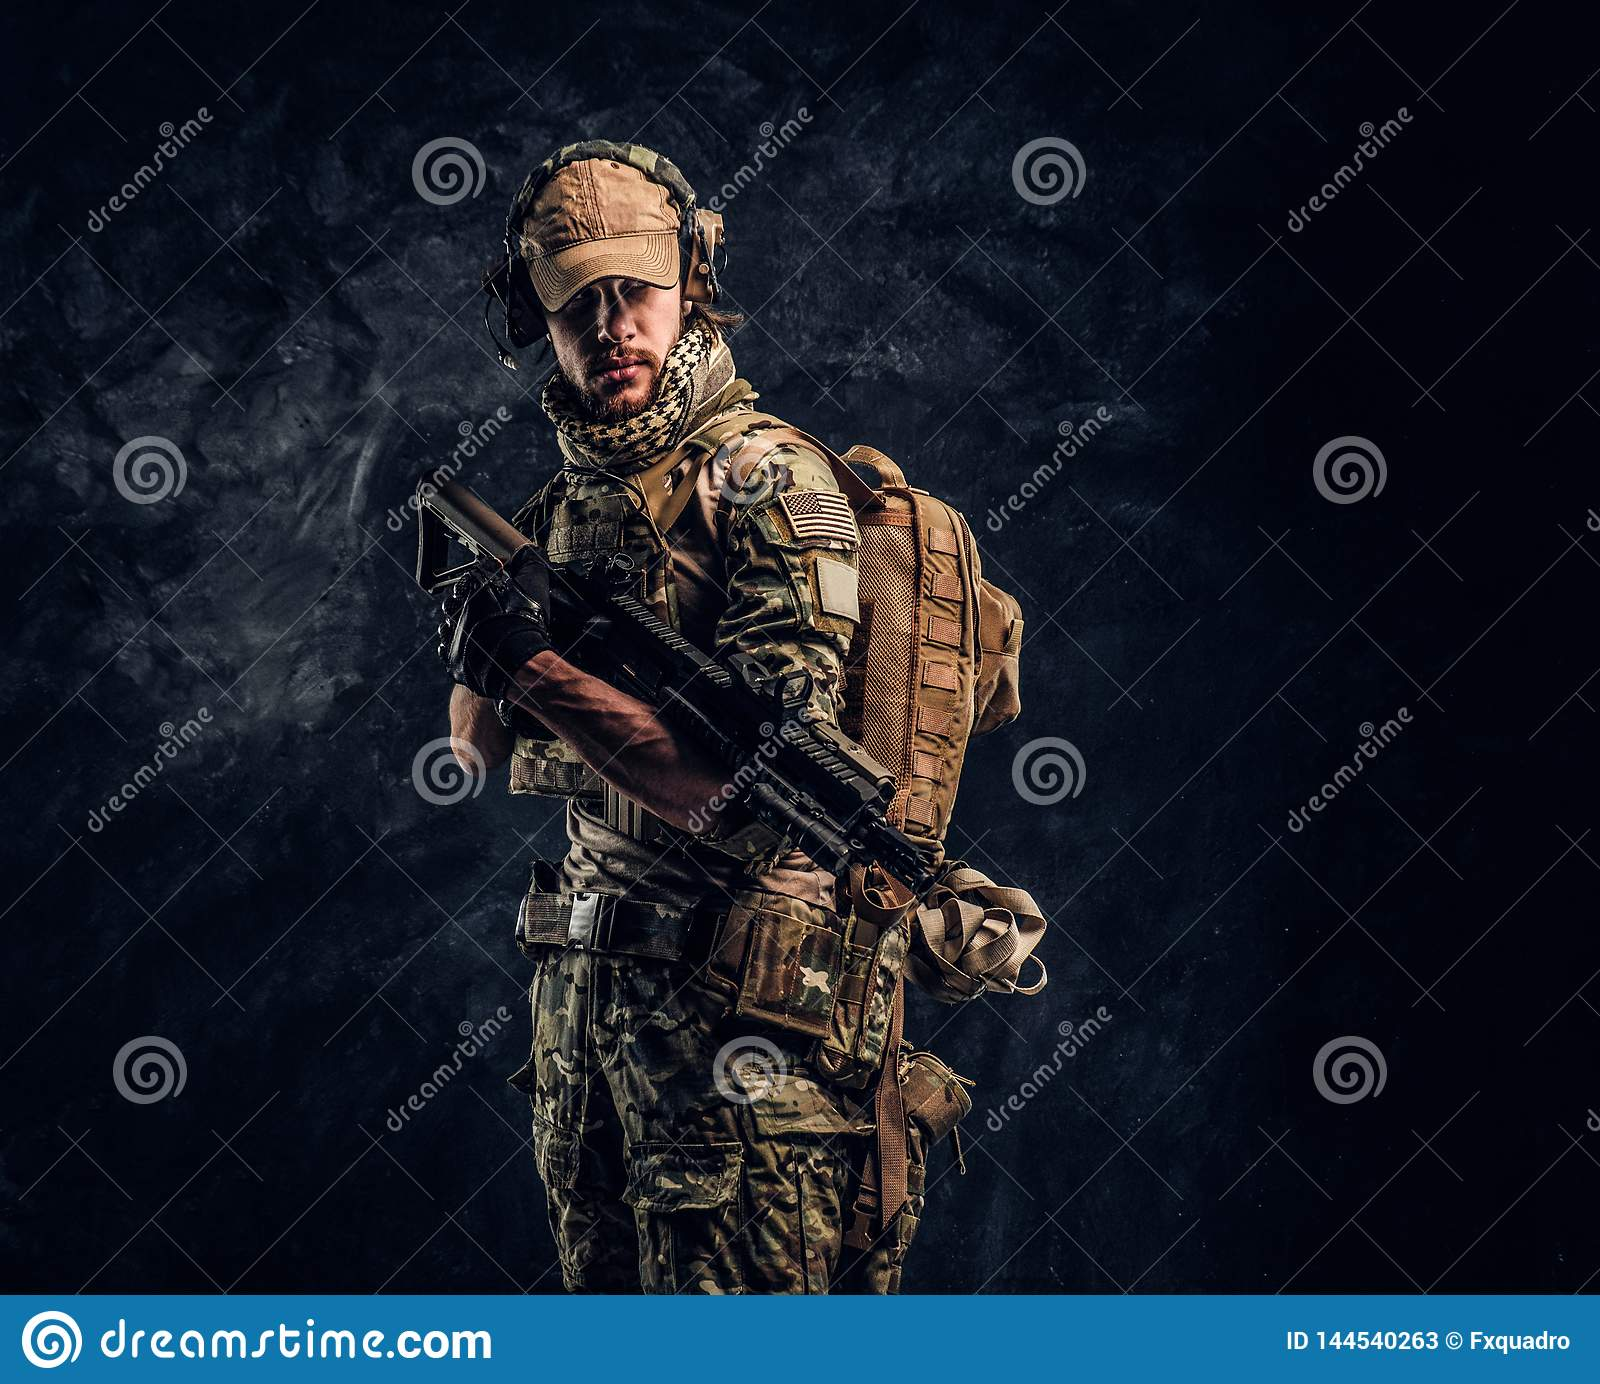 Fully equipped soldier in camouflage uniform holding an assault rifle. Studio photo against a dark wall